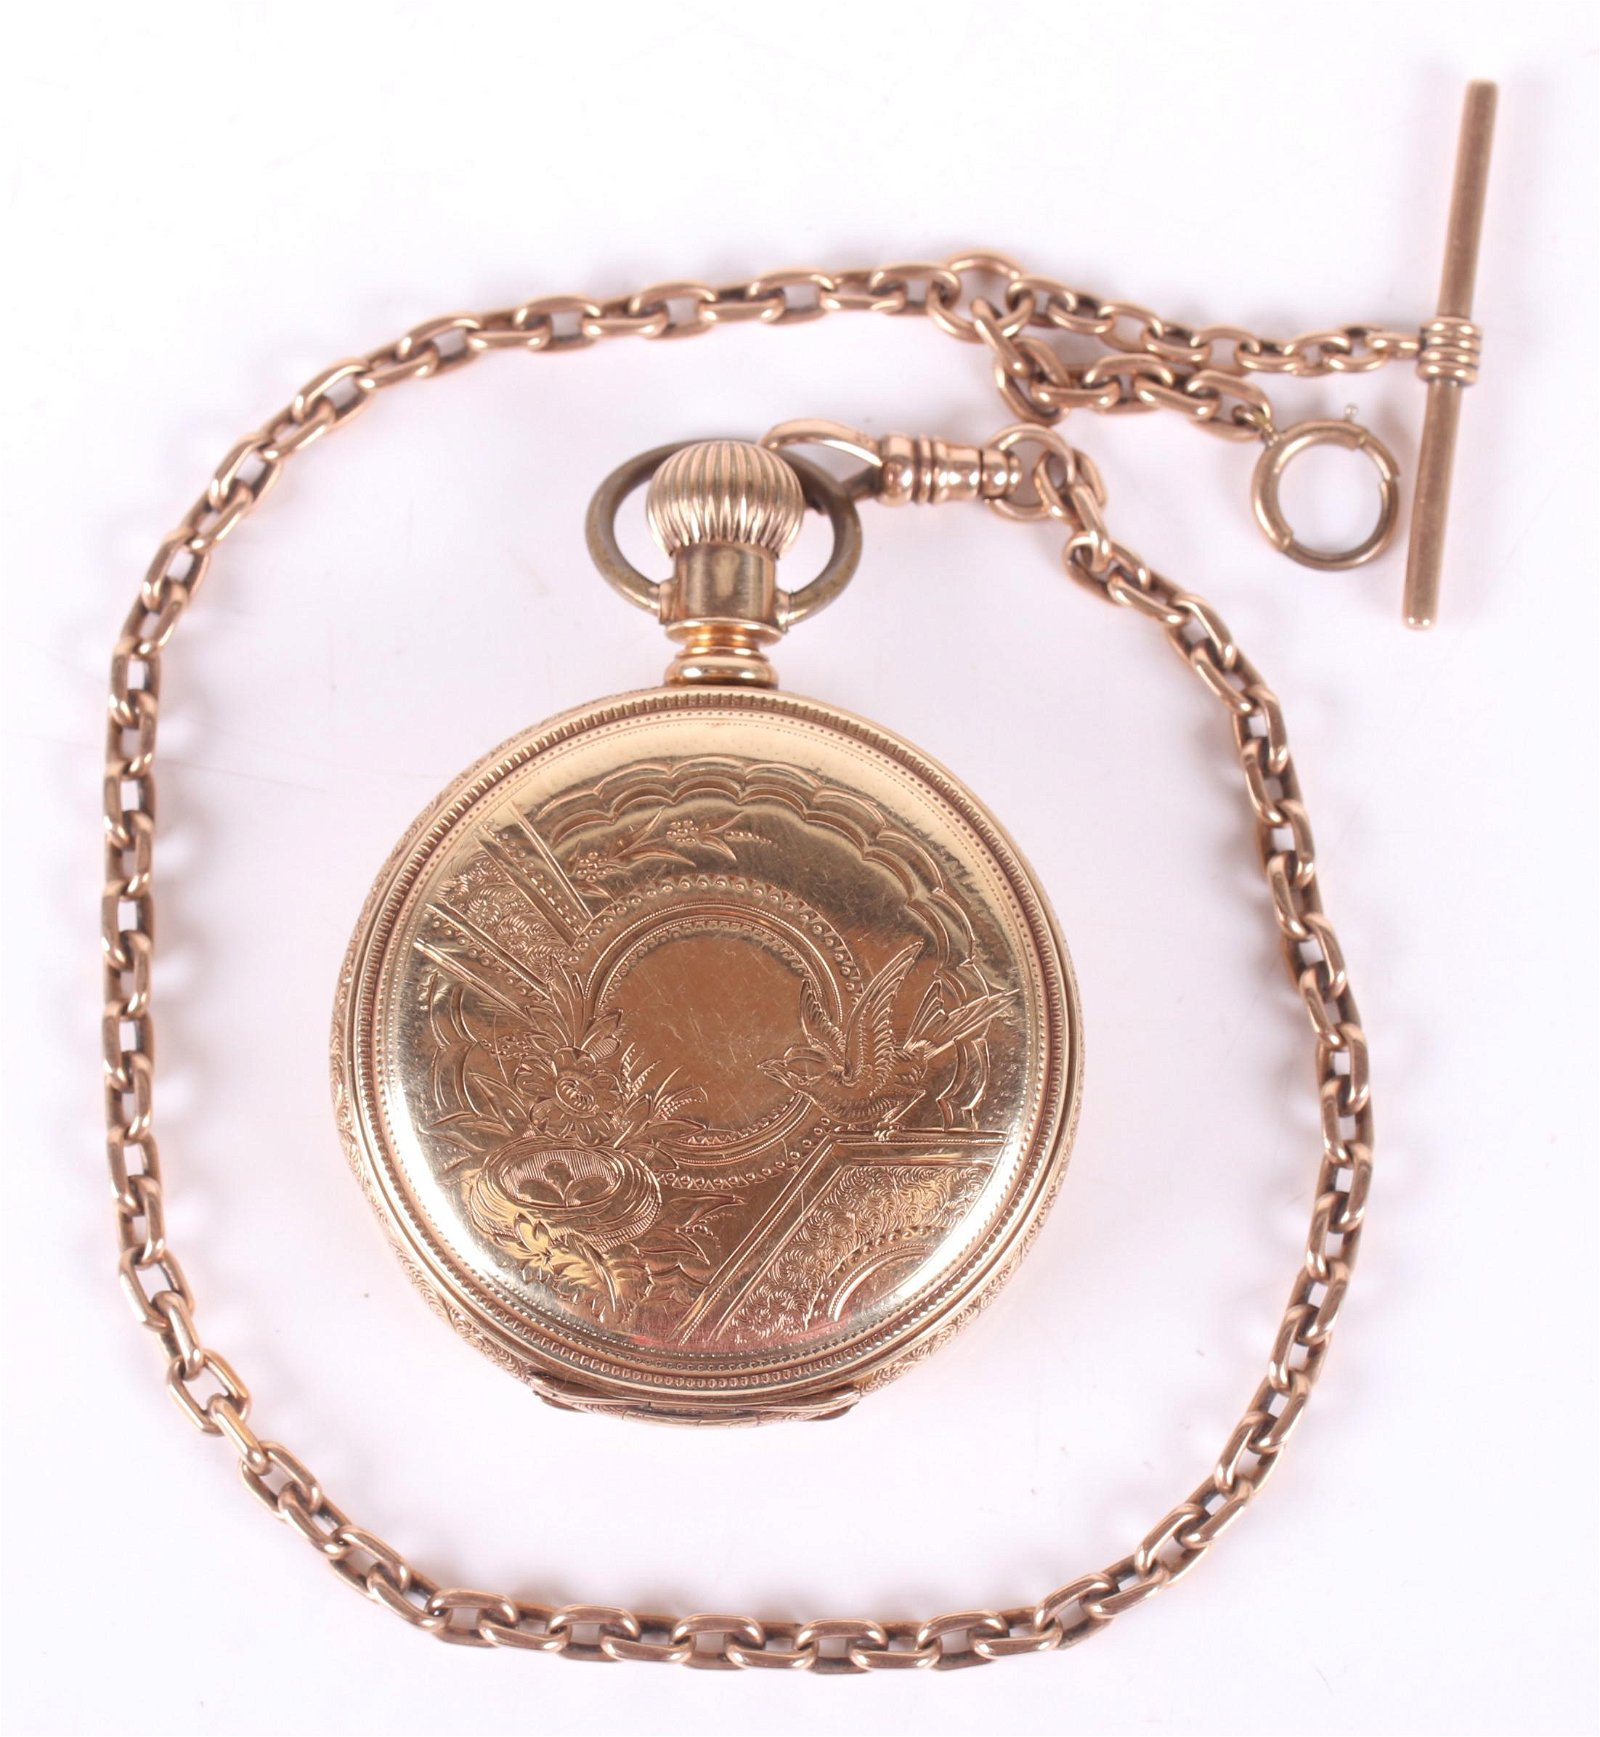 14k Gold Pocket Watch by Elgin